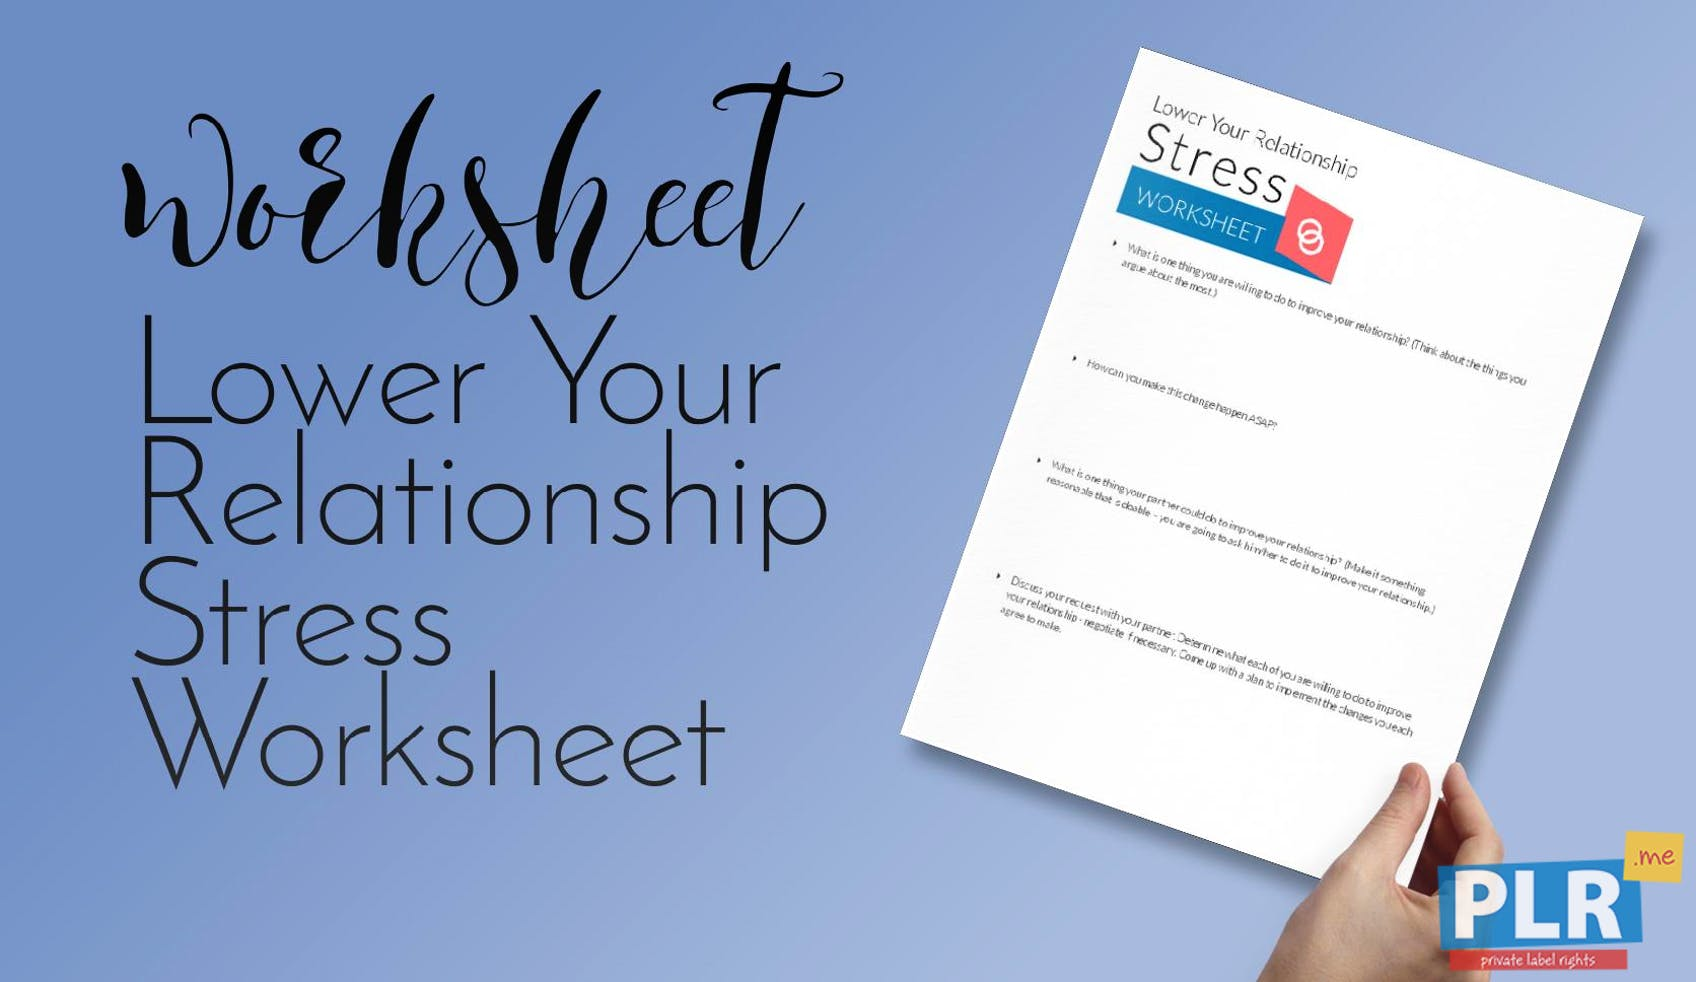 Lower Your Relationship Stress Worksheet